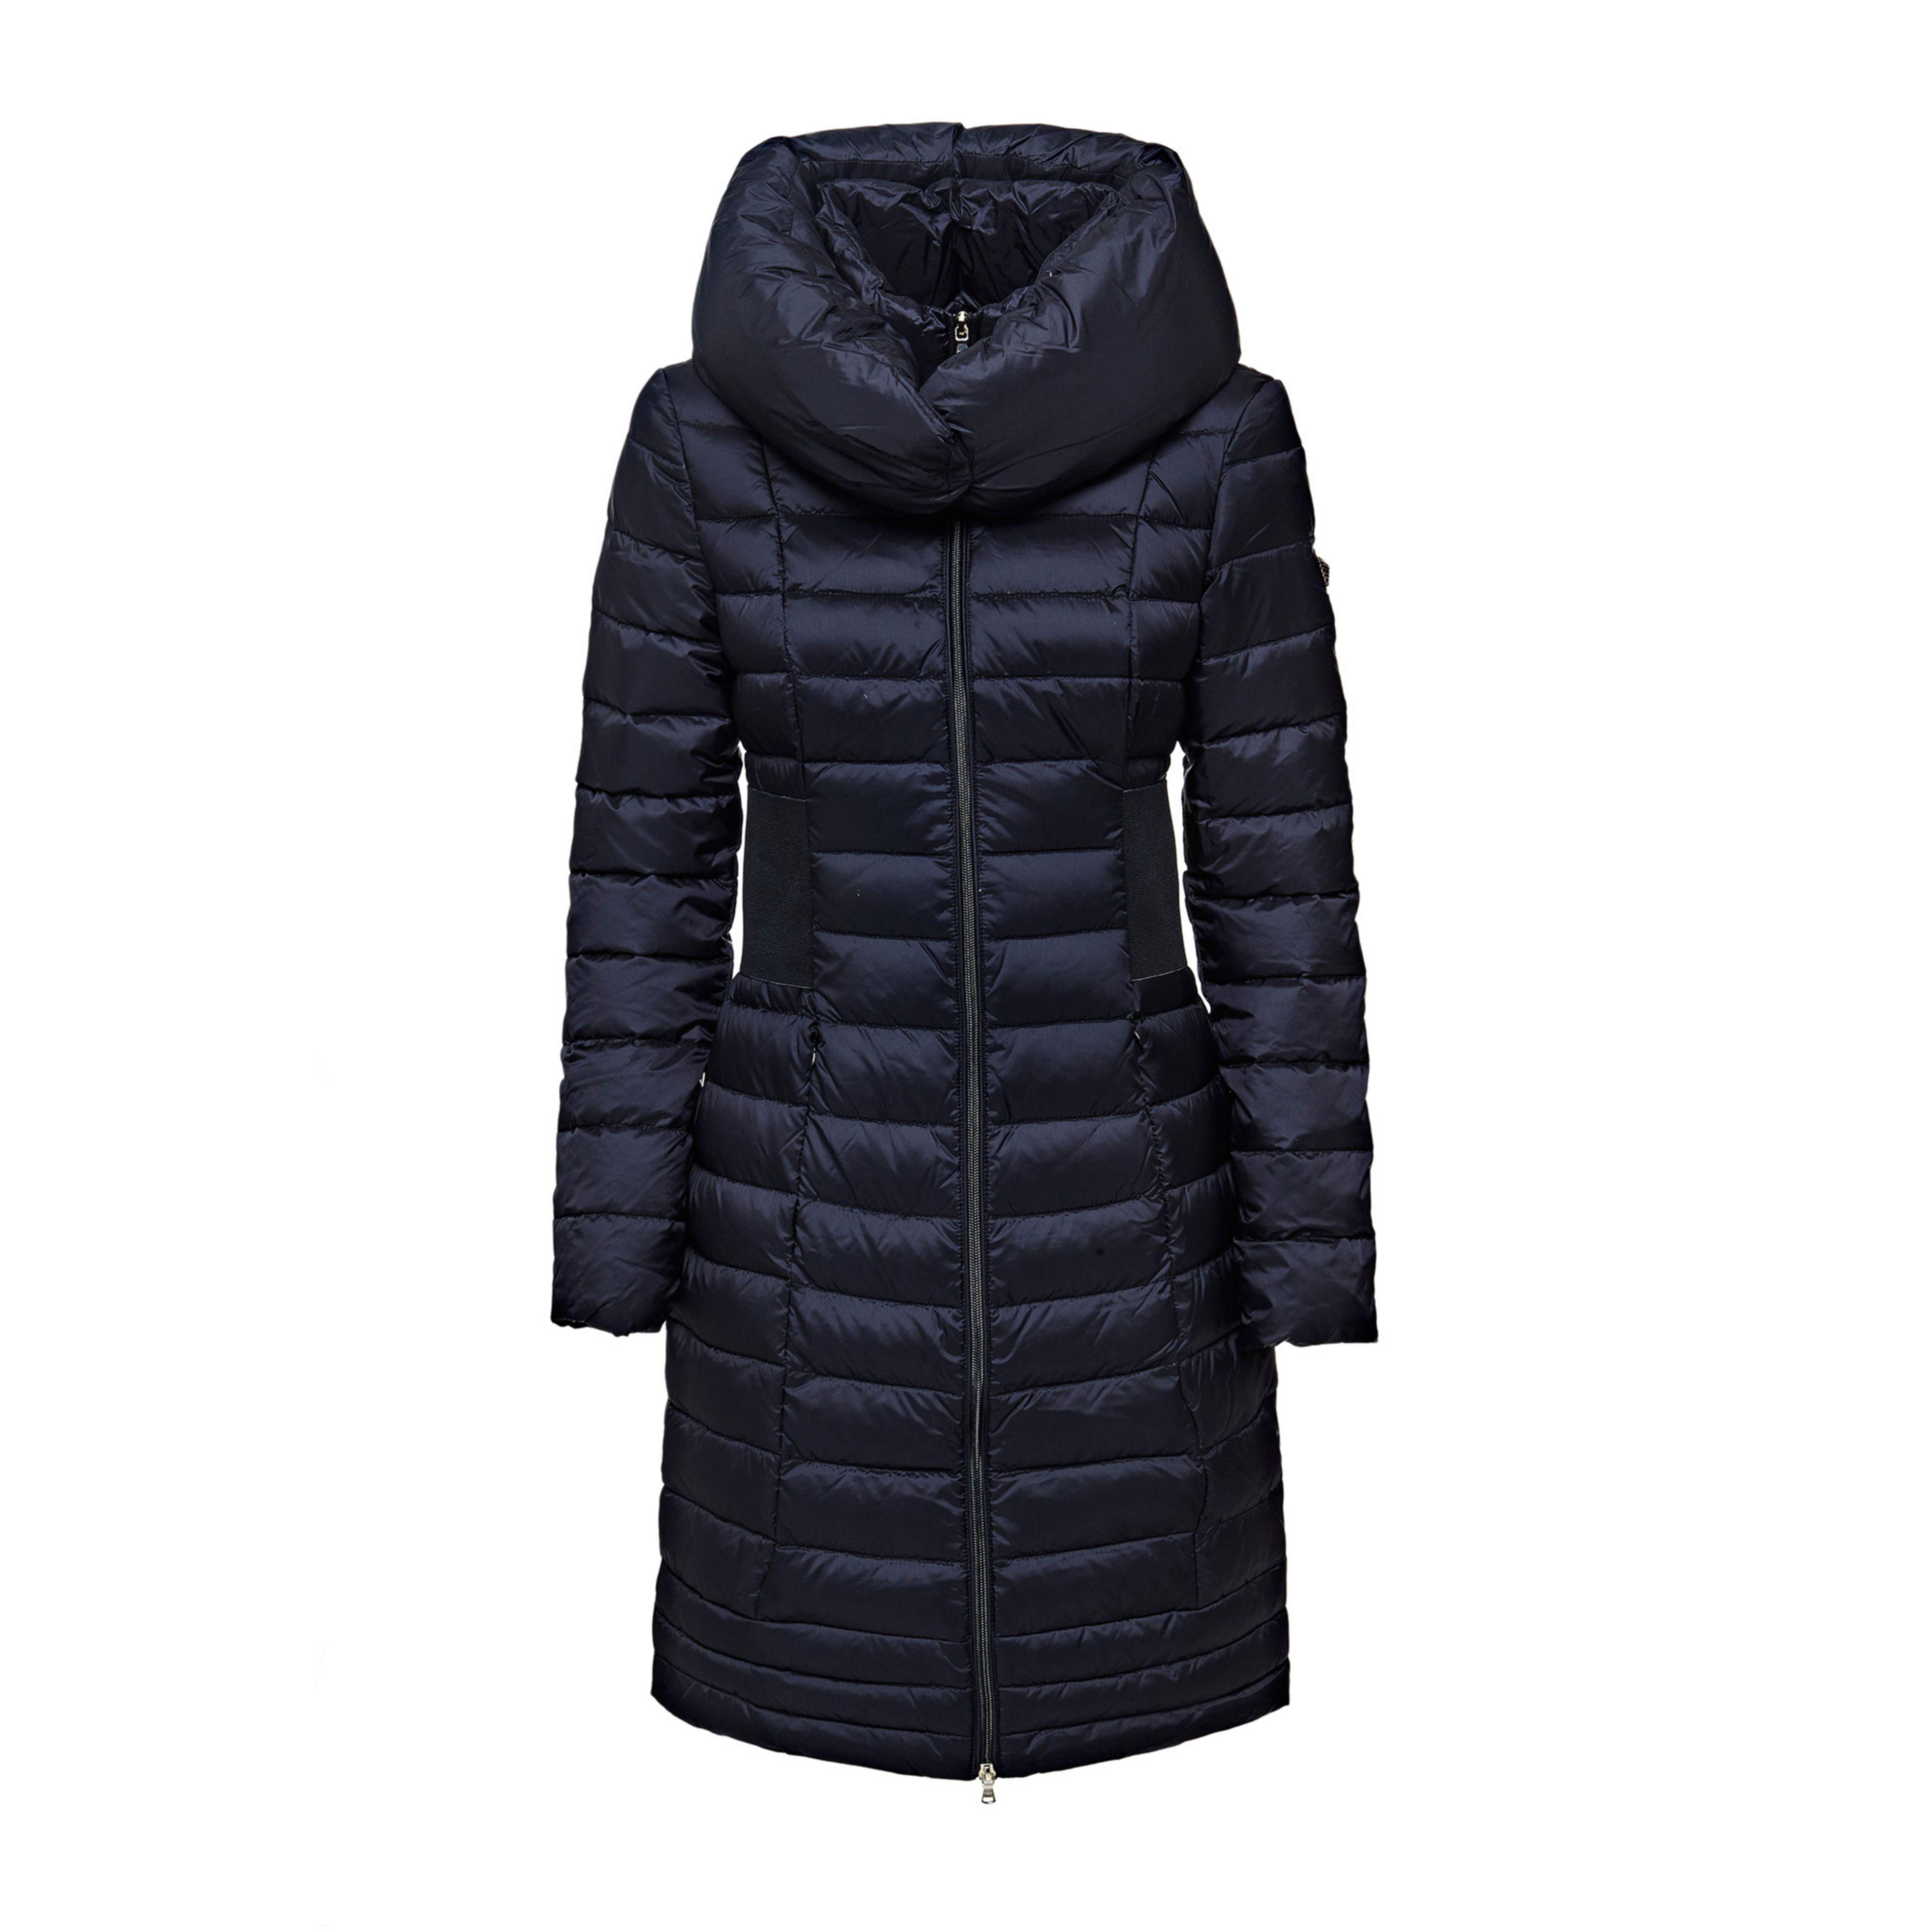 Free shipping and returns on quilted jackets for women at avupude.ml Shop moto jackets, goose down jackets and more. Check out our entire collection.